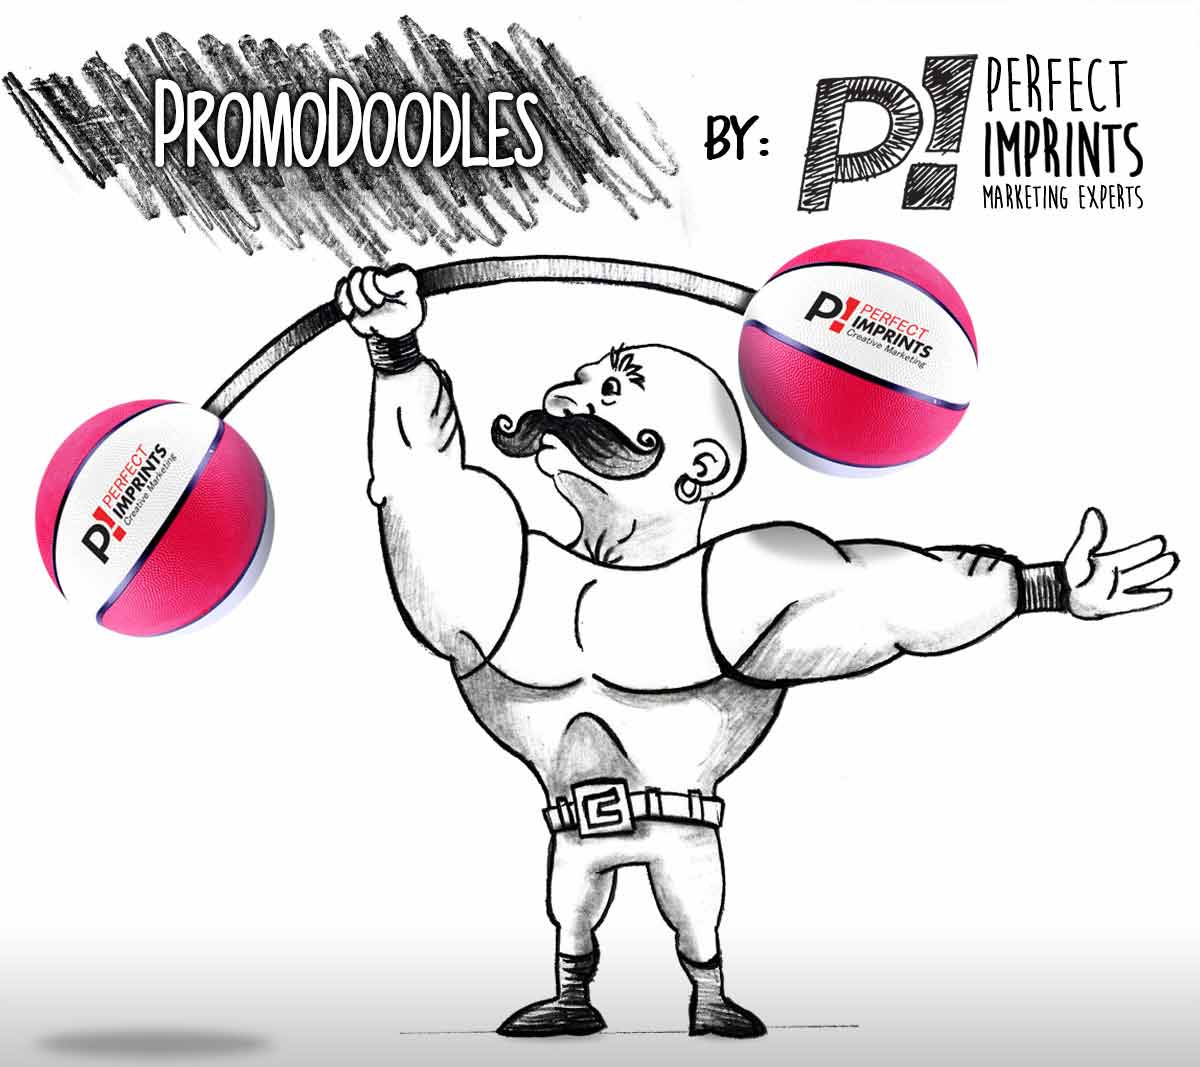 PromoDoodles by Perfect Imprints - Custom Basketballs